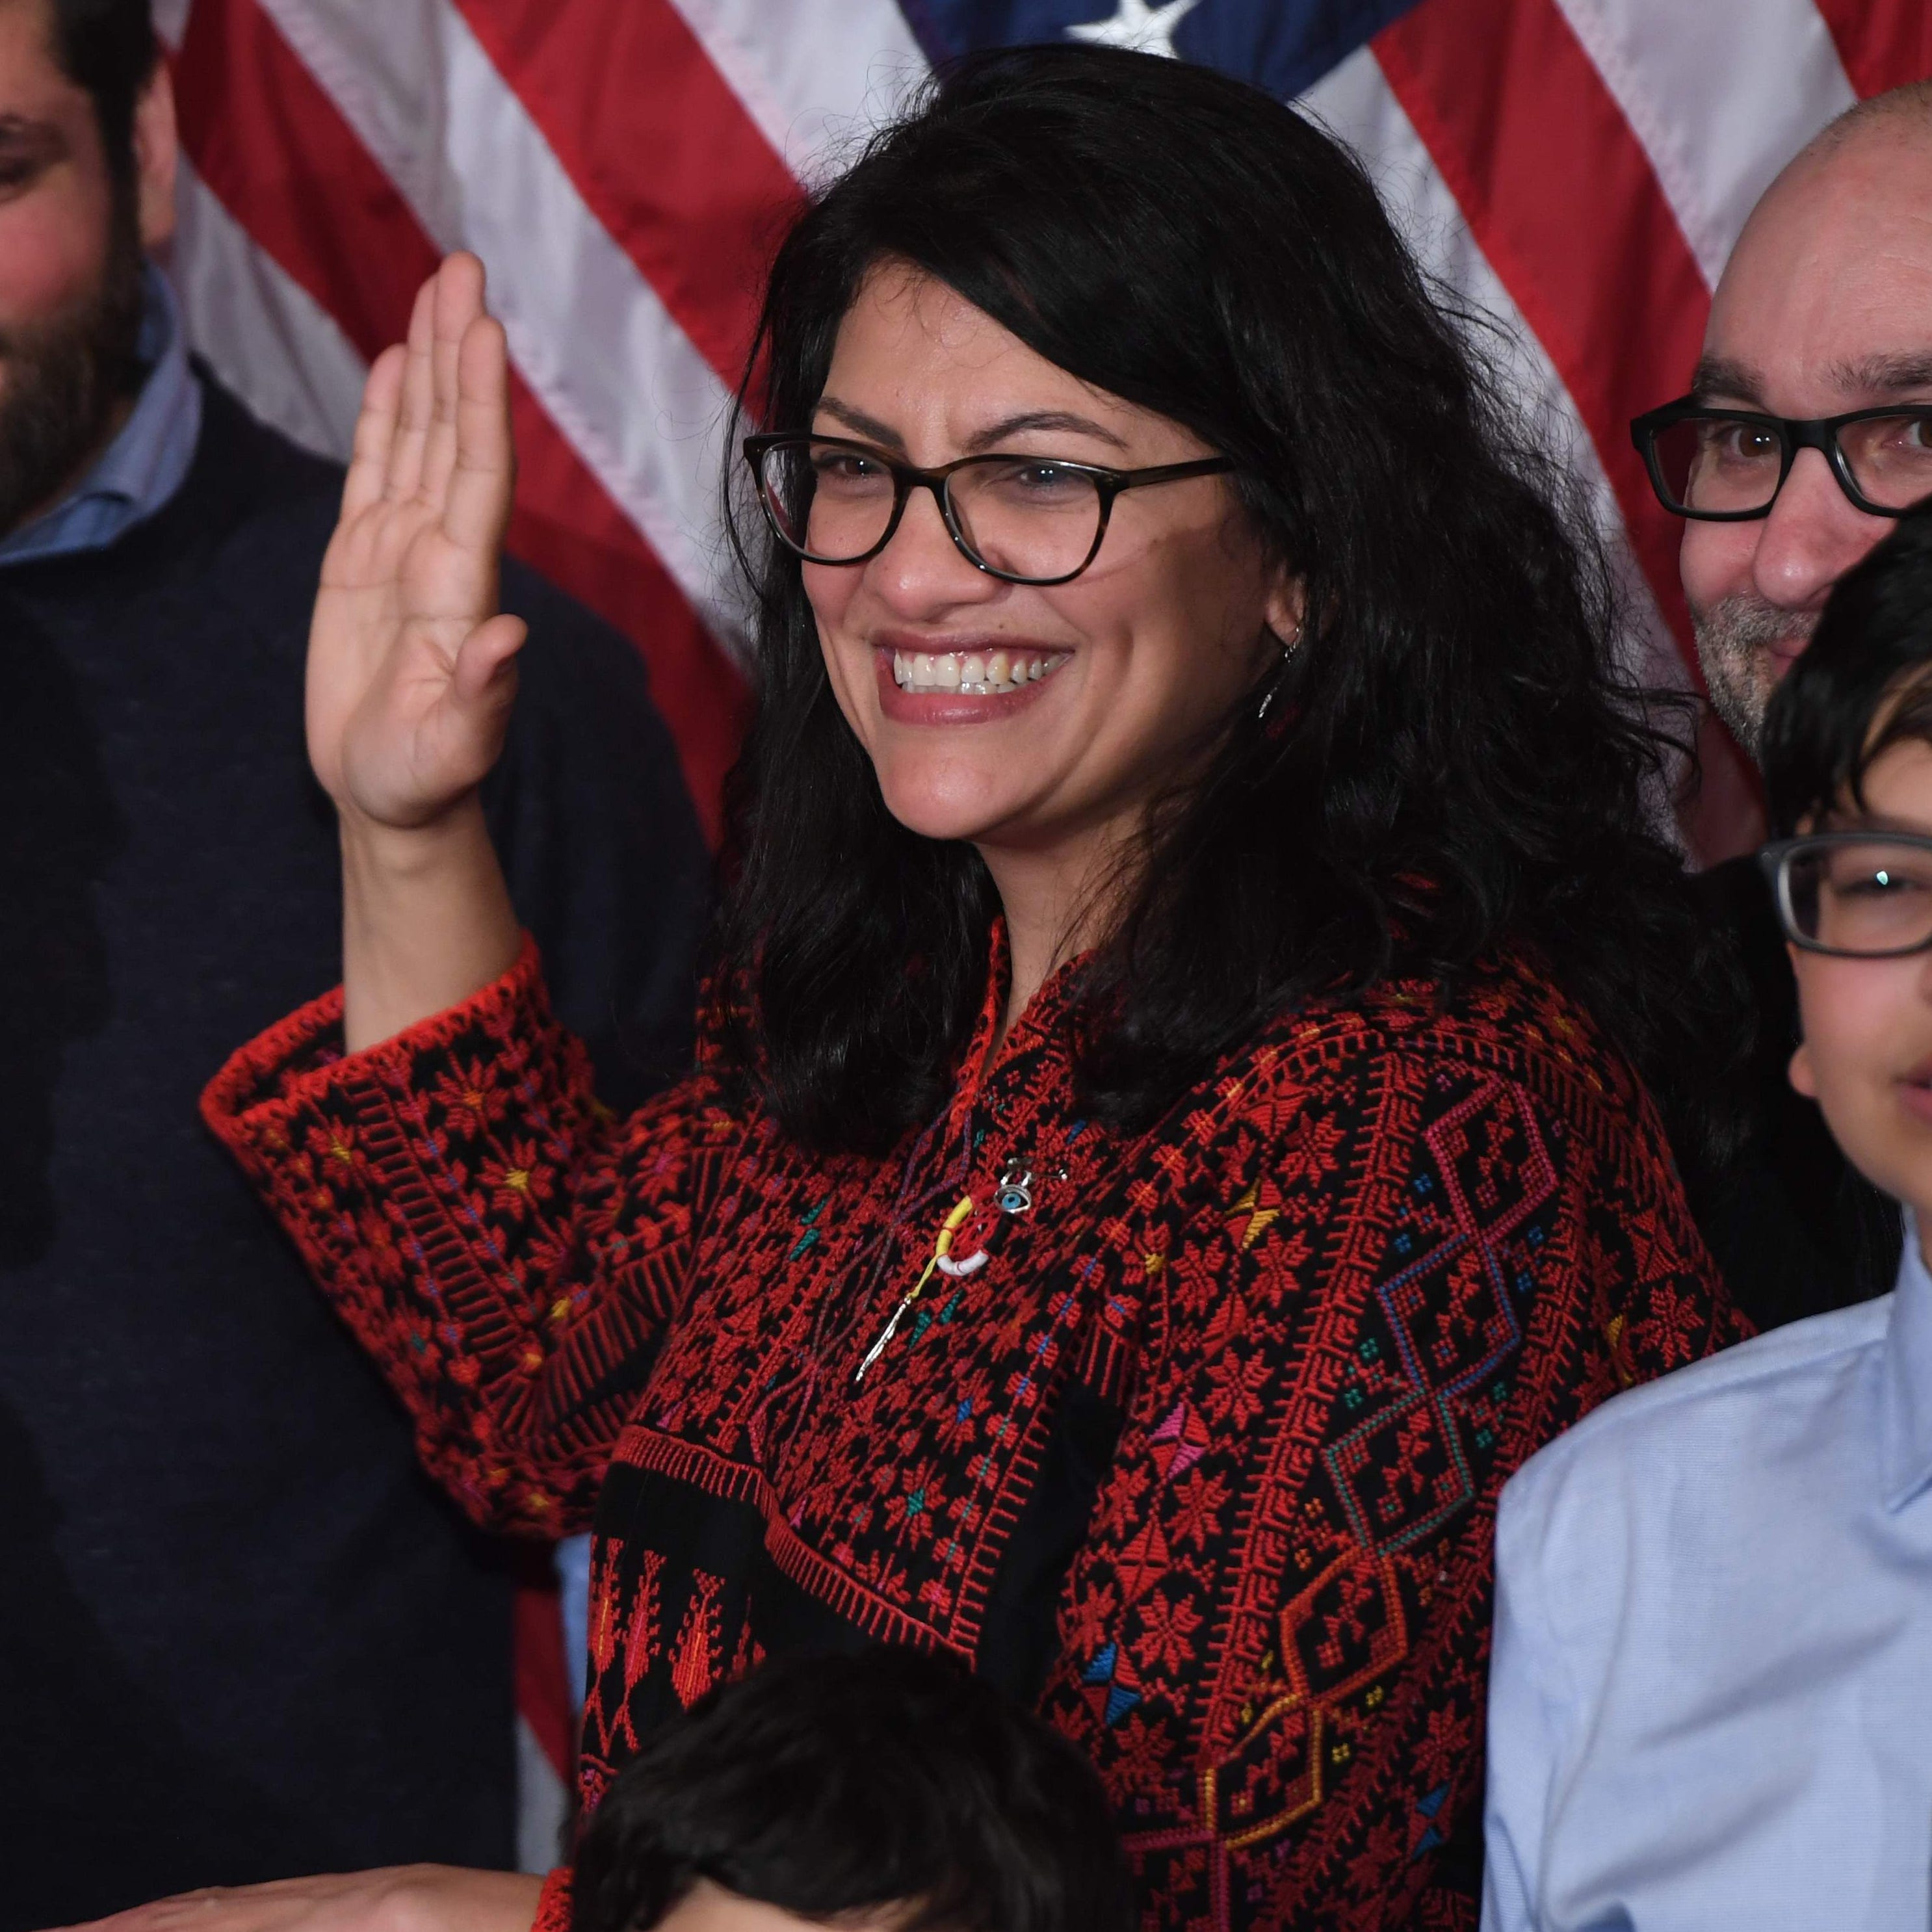 Florida official says Rashida Tlaib might 'blow up Capitol Hill'